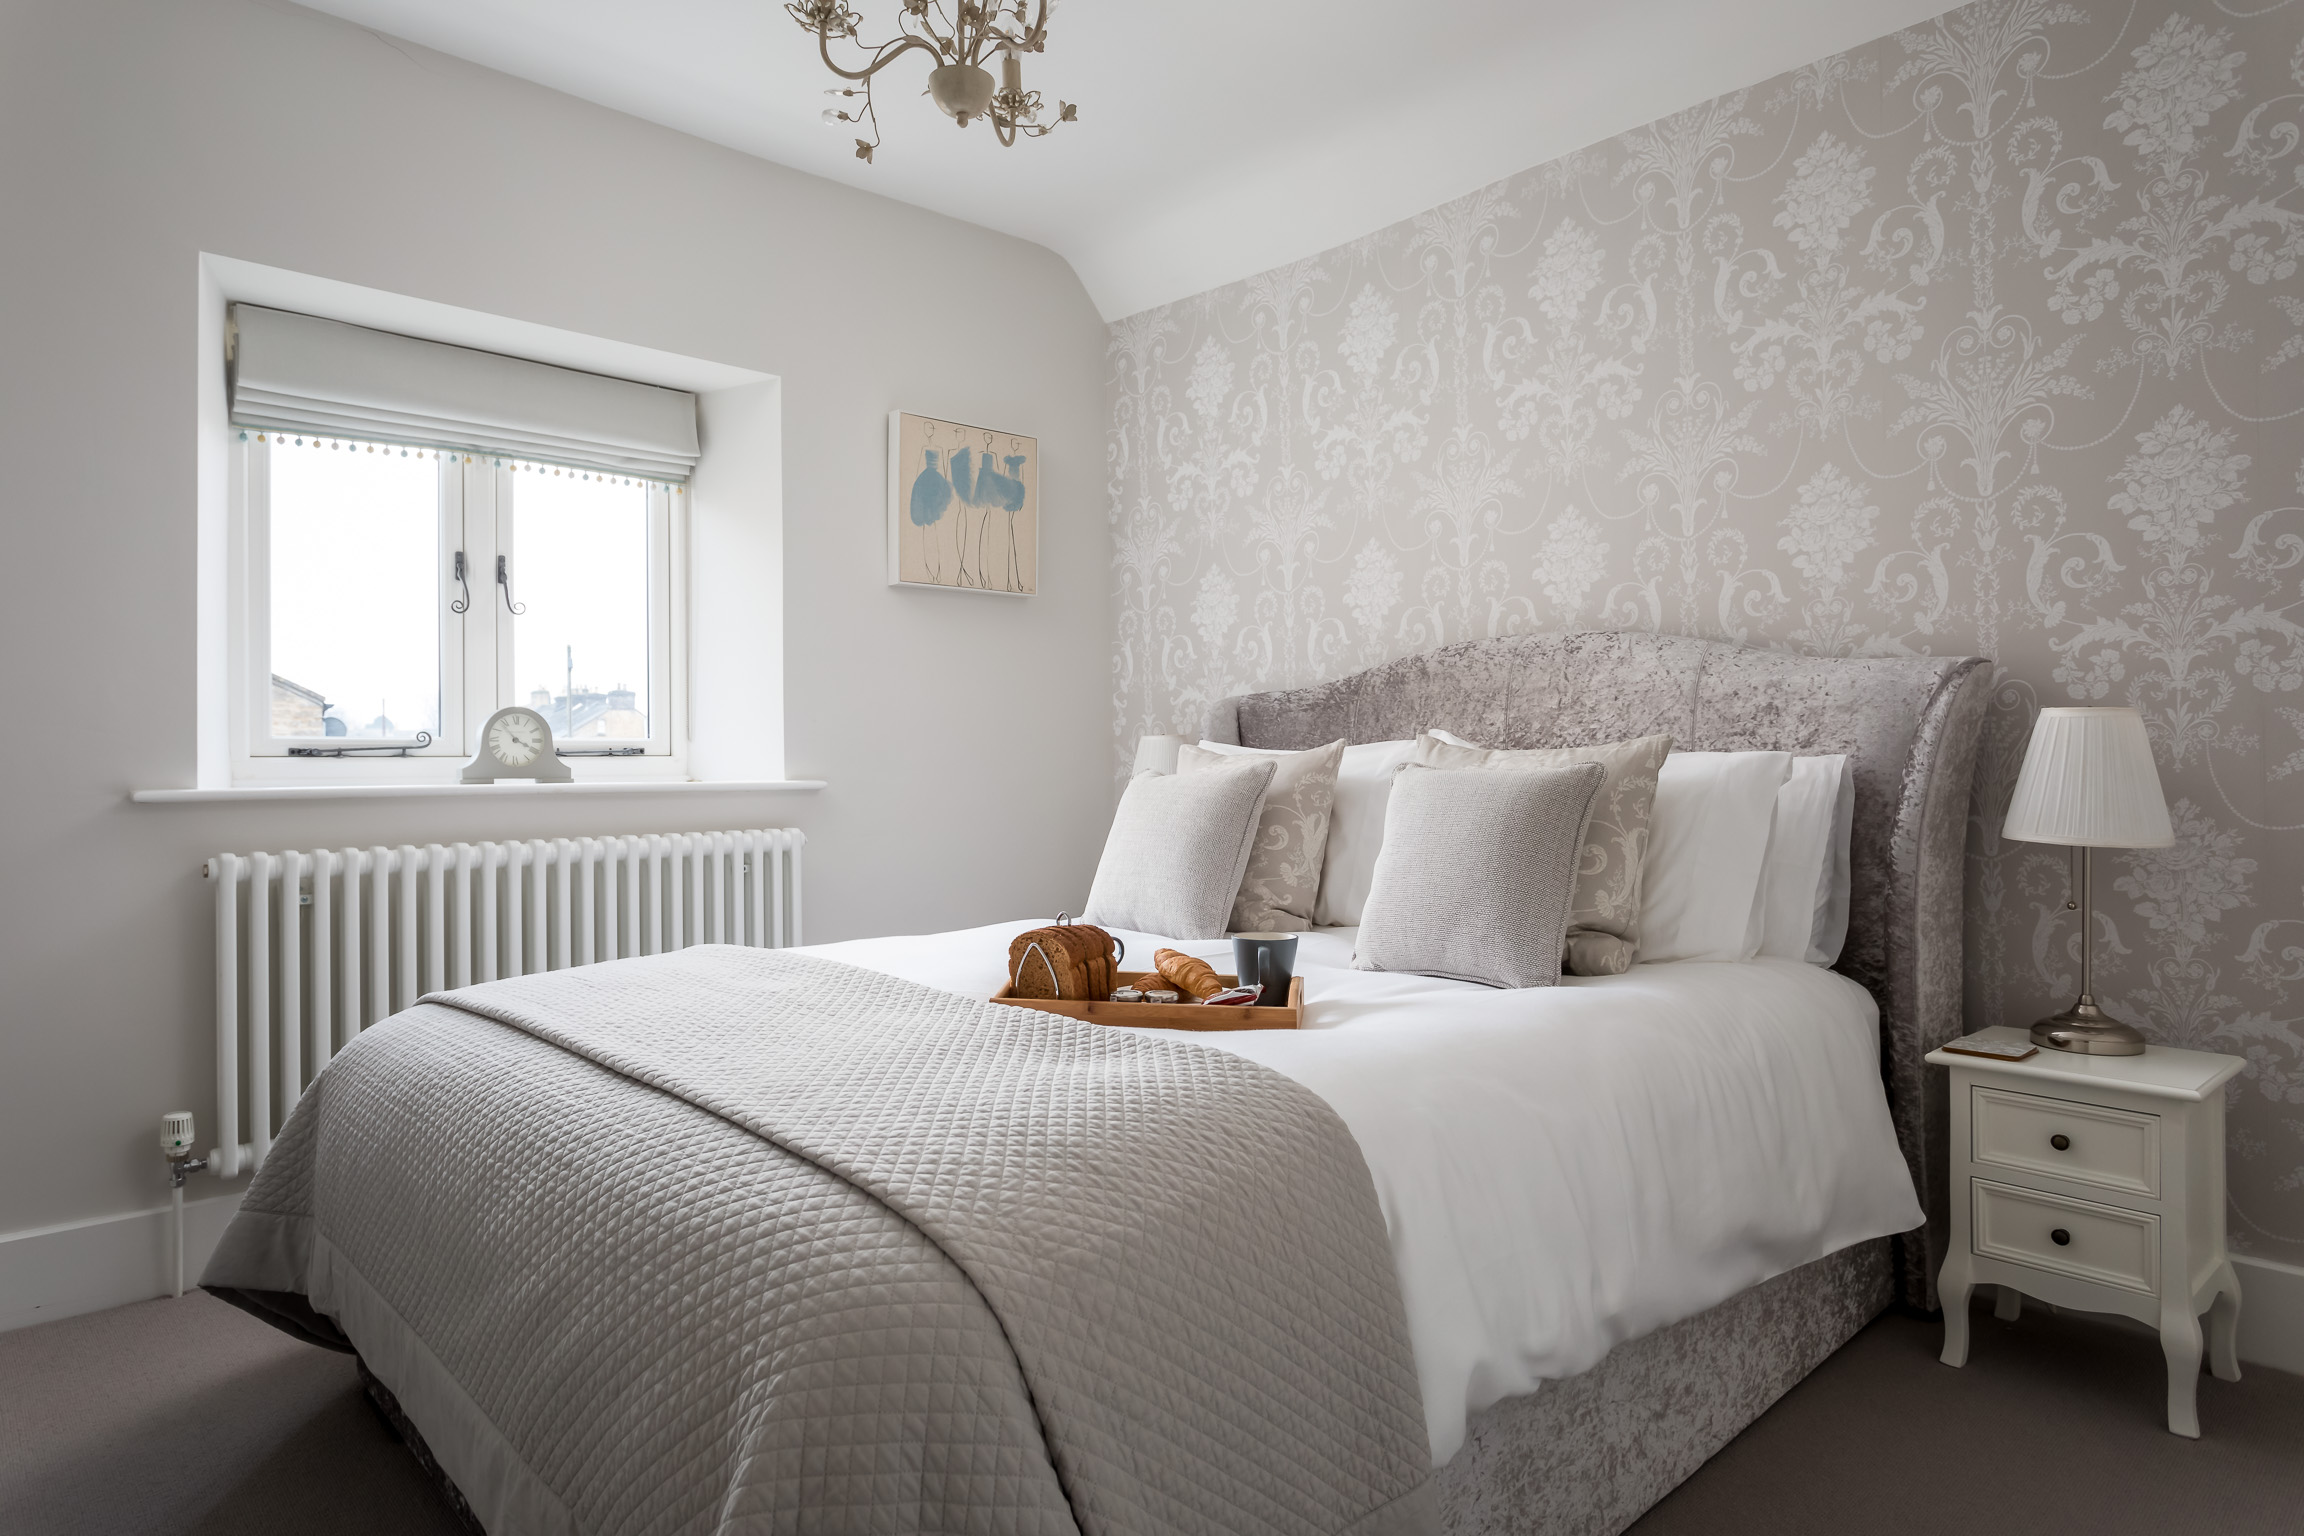 Bedroom: Relax in the kingsize bed